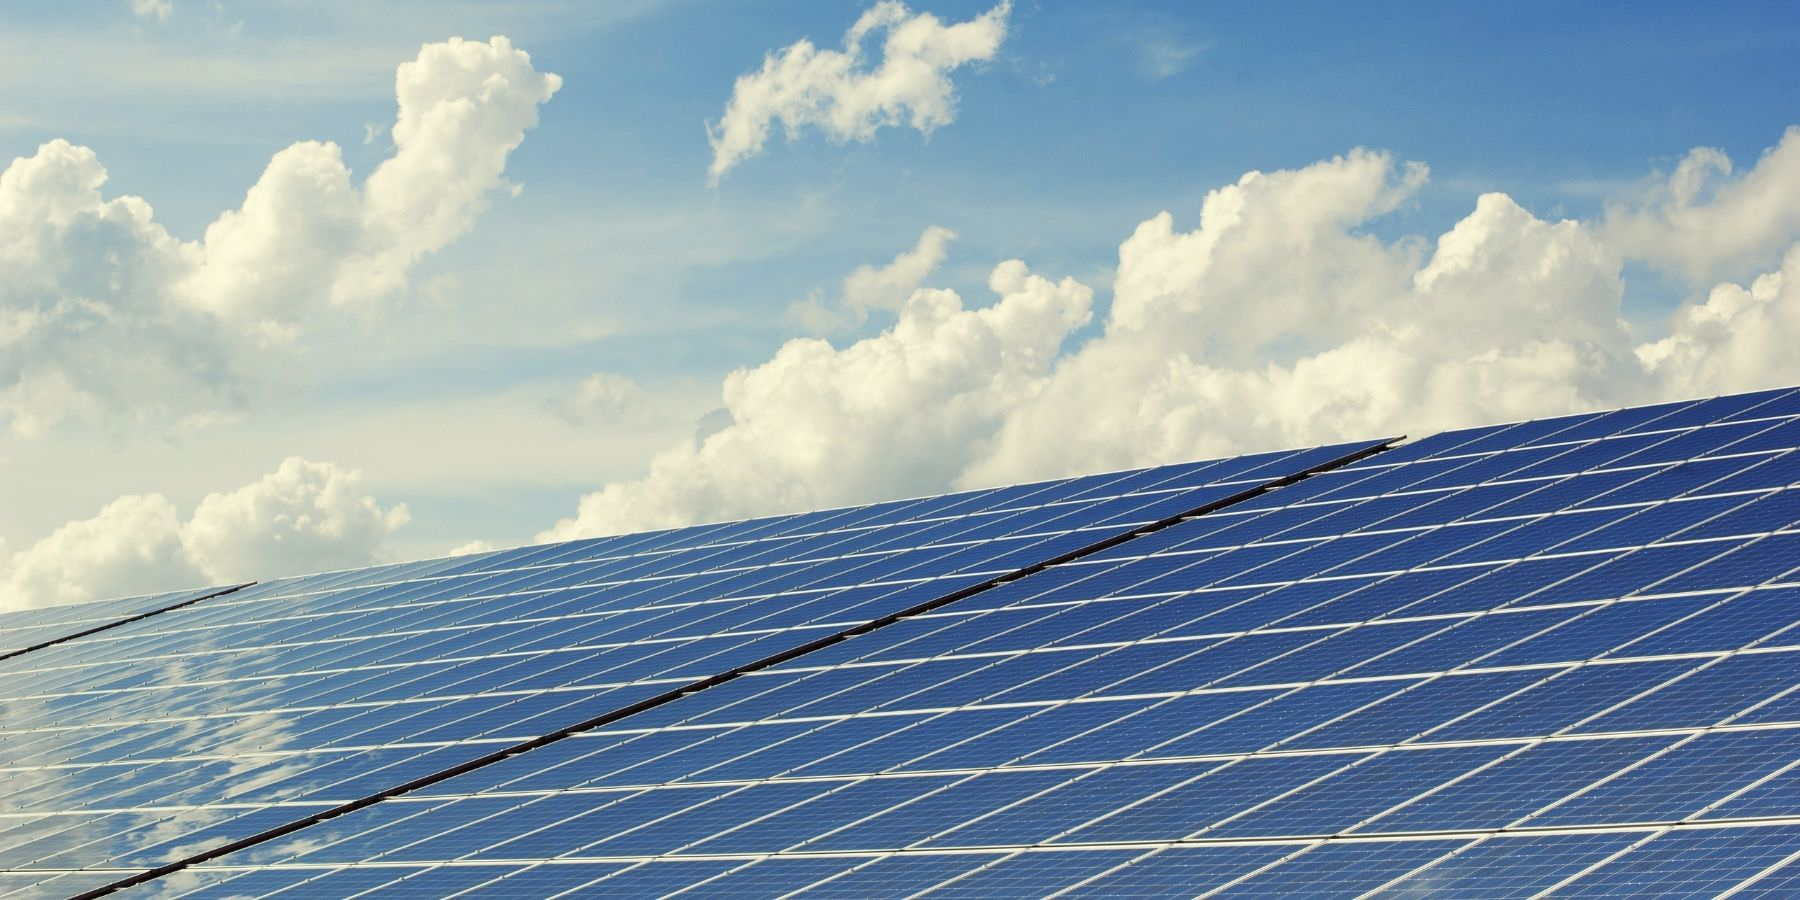 Repower Health | Power the health sector with renewable energy